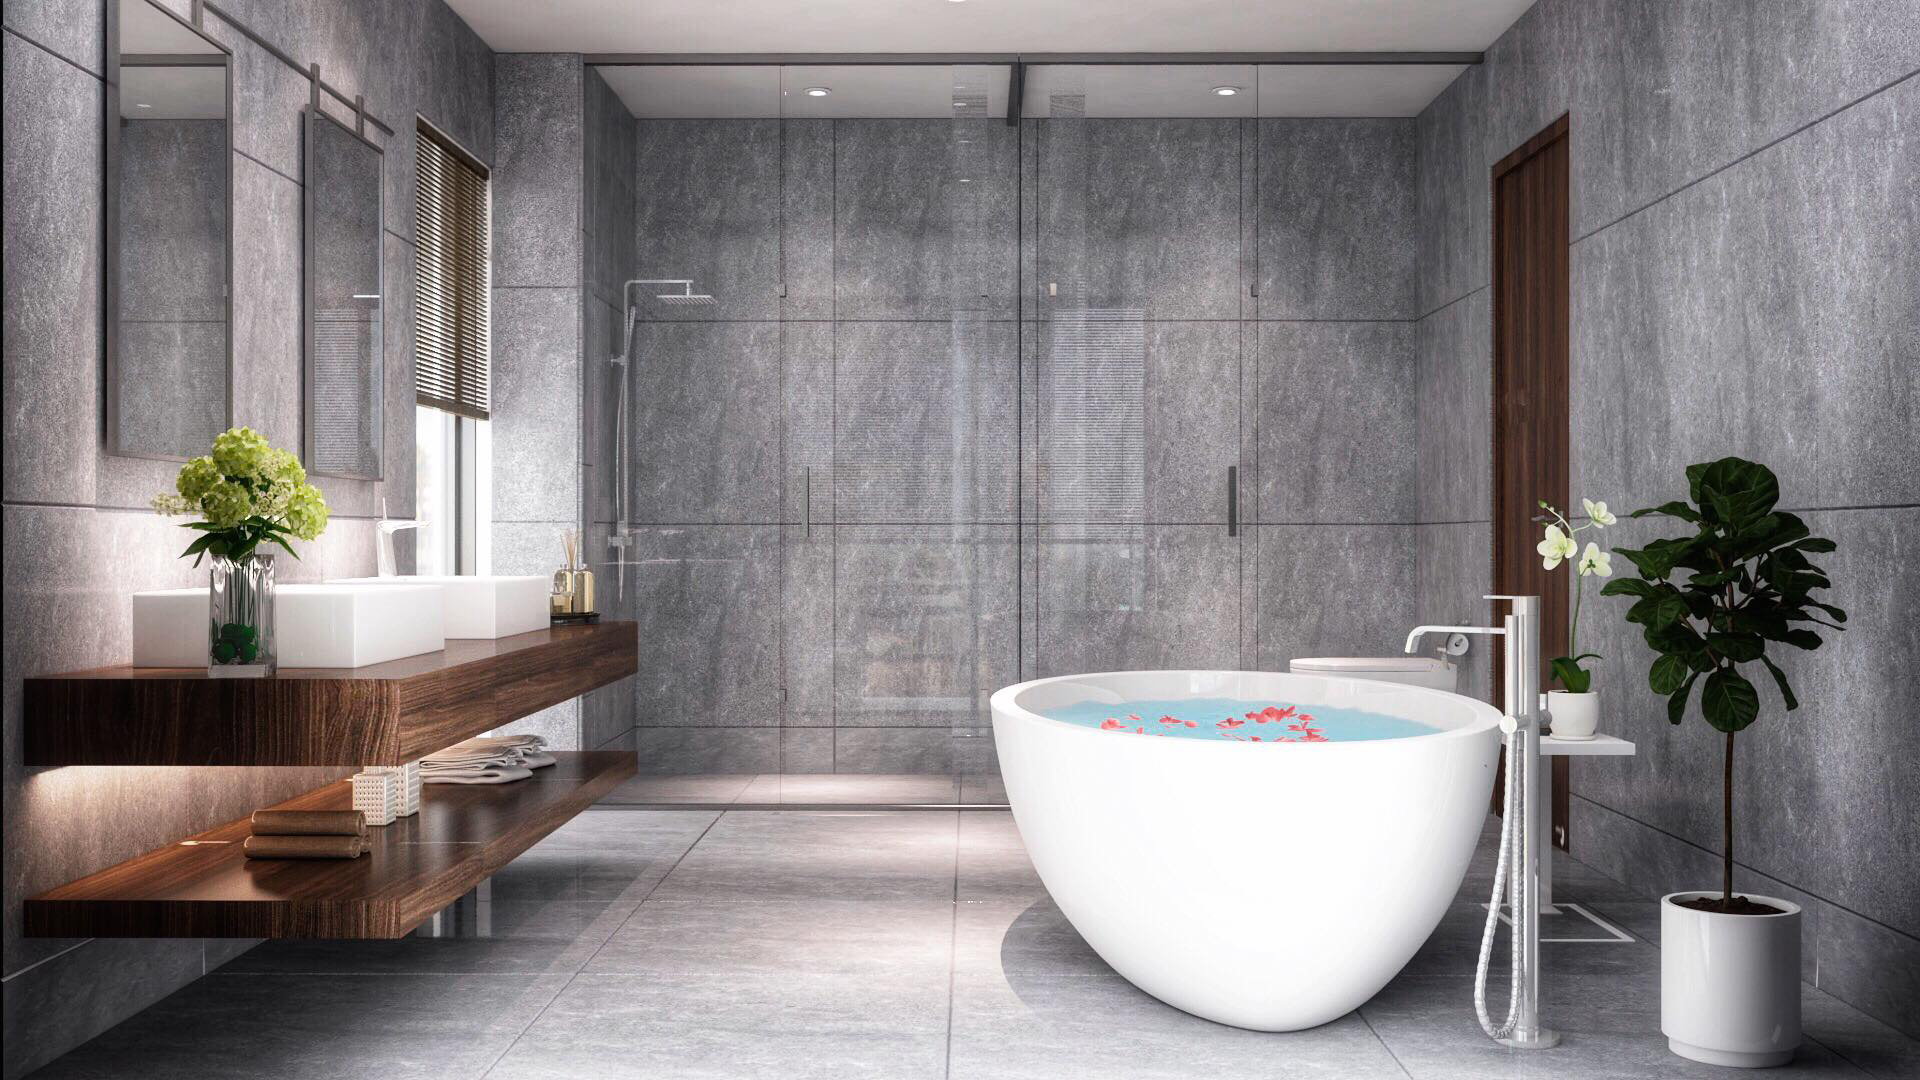 Bathroom rendering 2